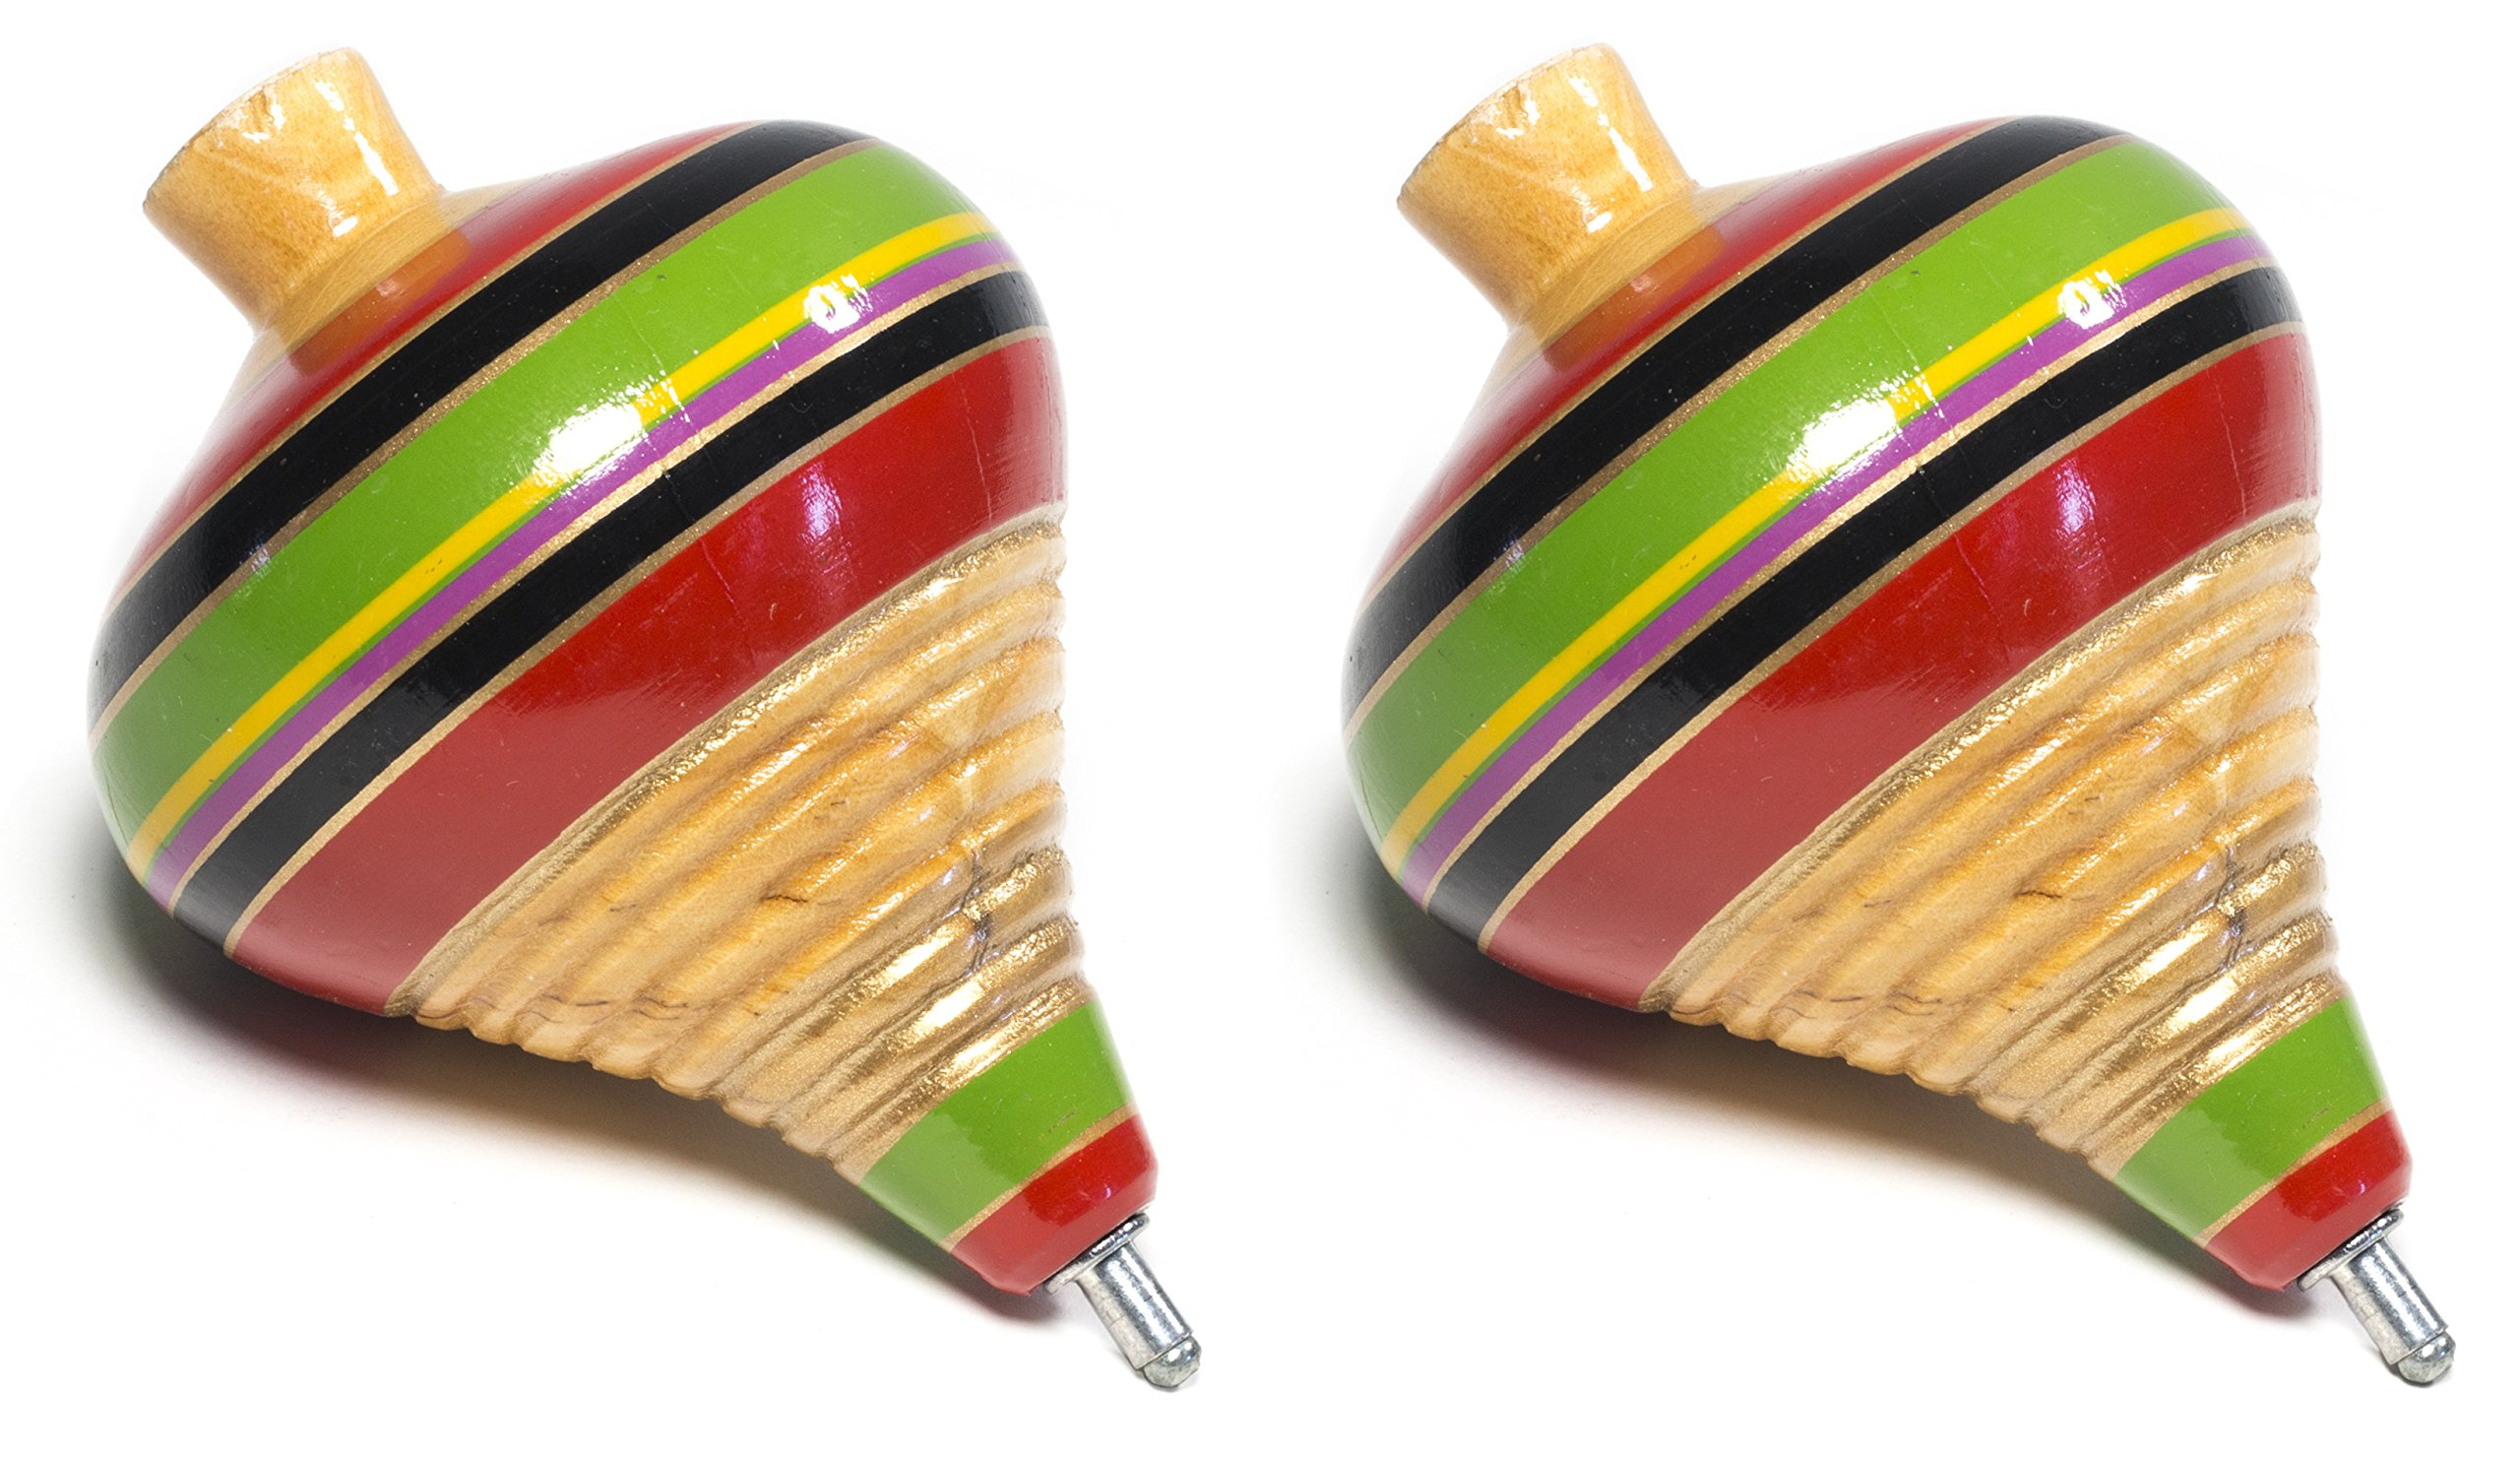 (2 Pack) MexIcan Classic Wooden Spininng Trompo / Trompo de Madera Mexicano - The Best Quality